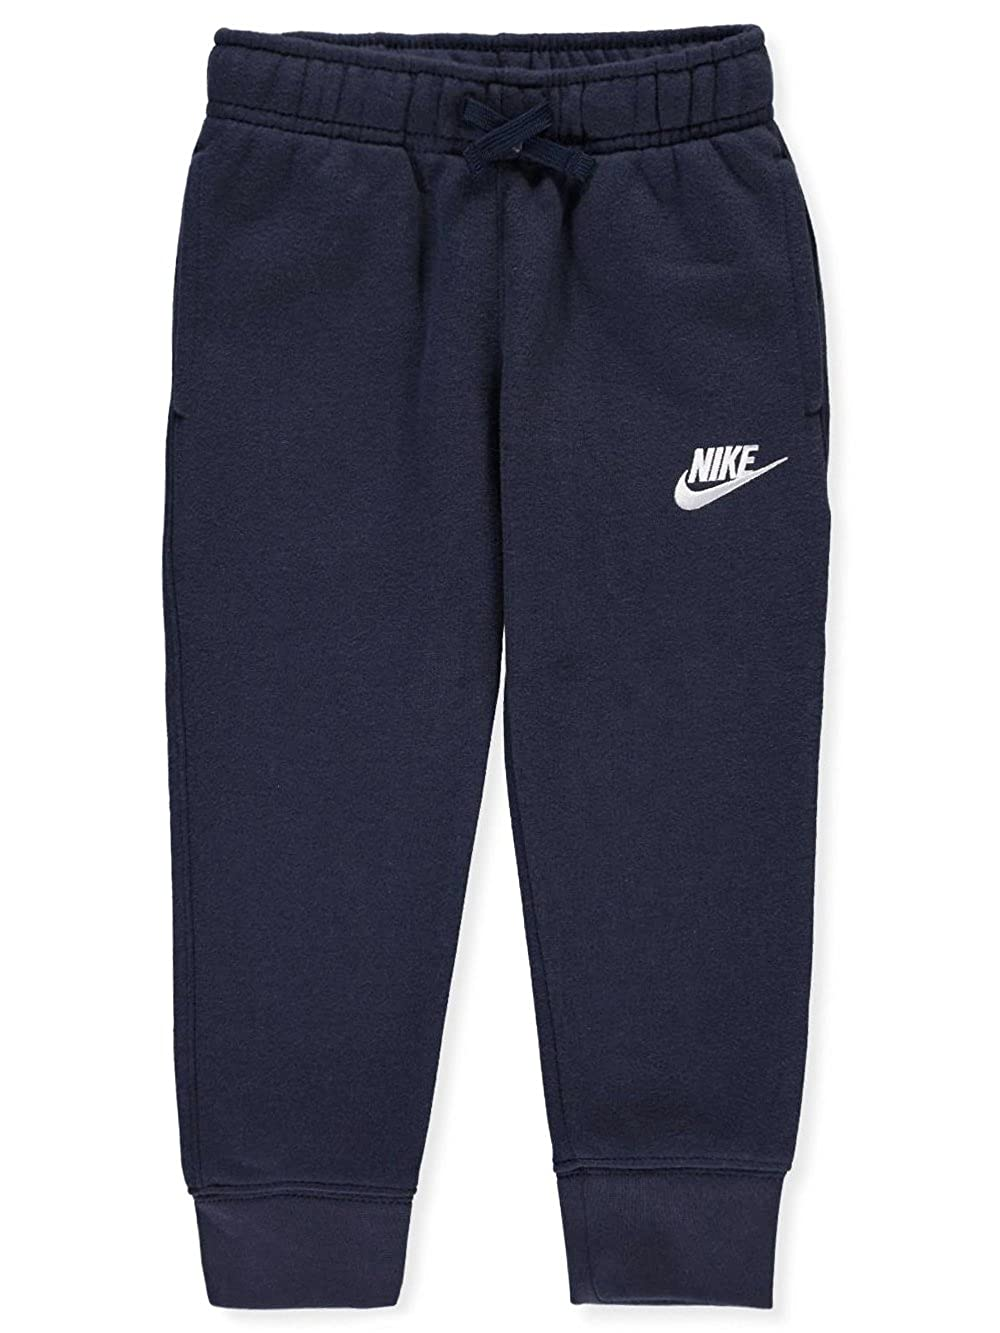 NIKE Little Boys' Toddler Fleece Jogger Pants (Sizes 2T - 4T)